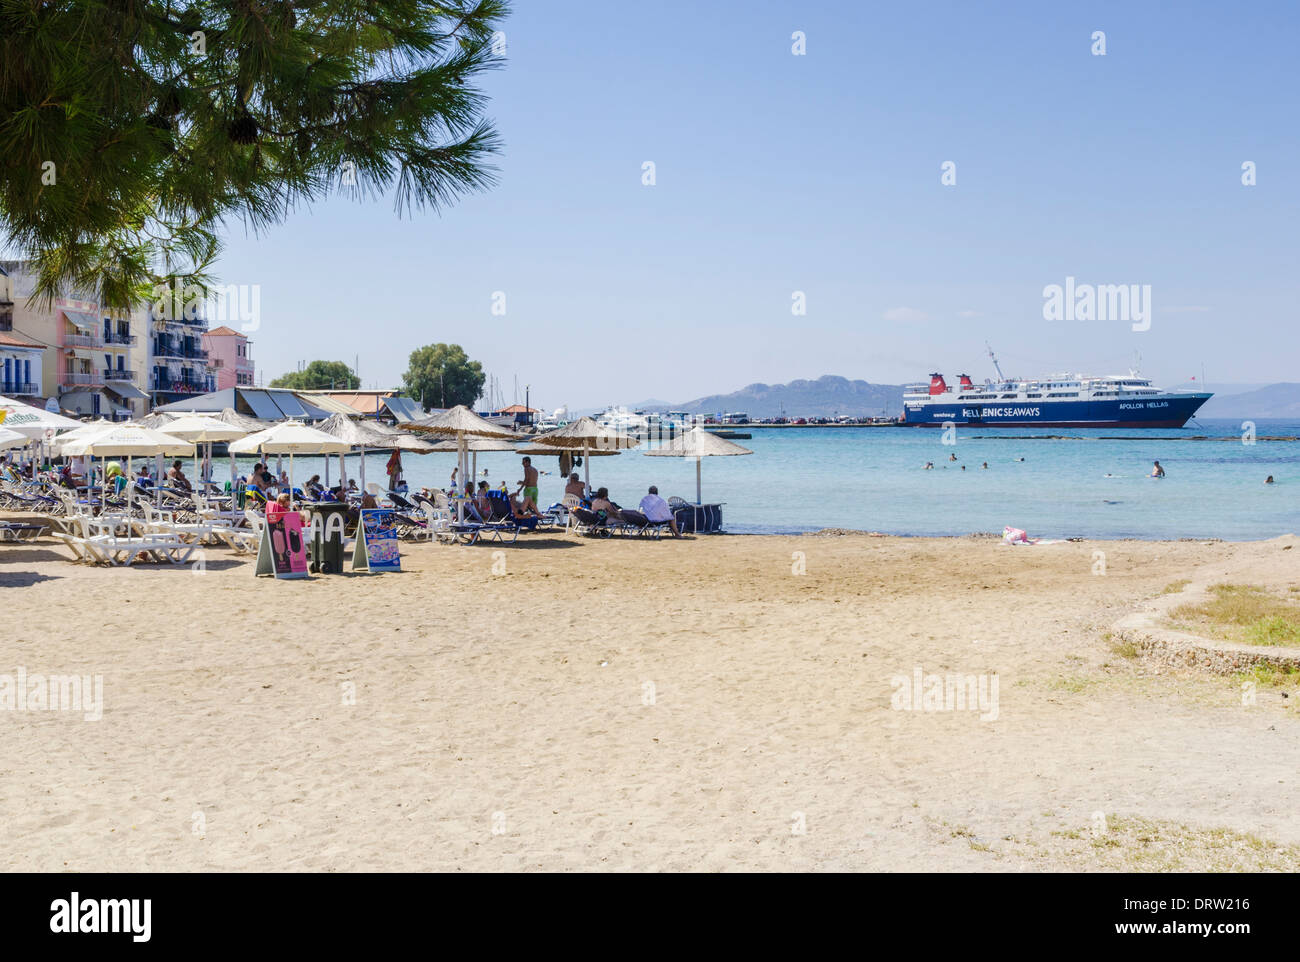 People on Avra beach with a ferry in the background, Aegina Town, Aegina Island, Greece - Stock Image